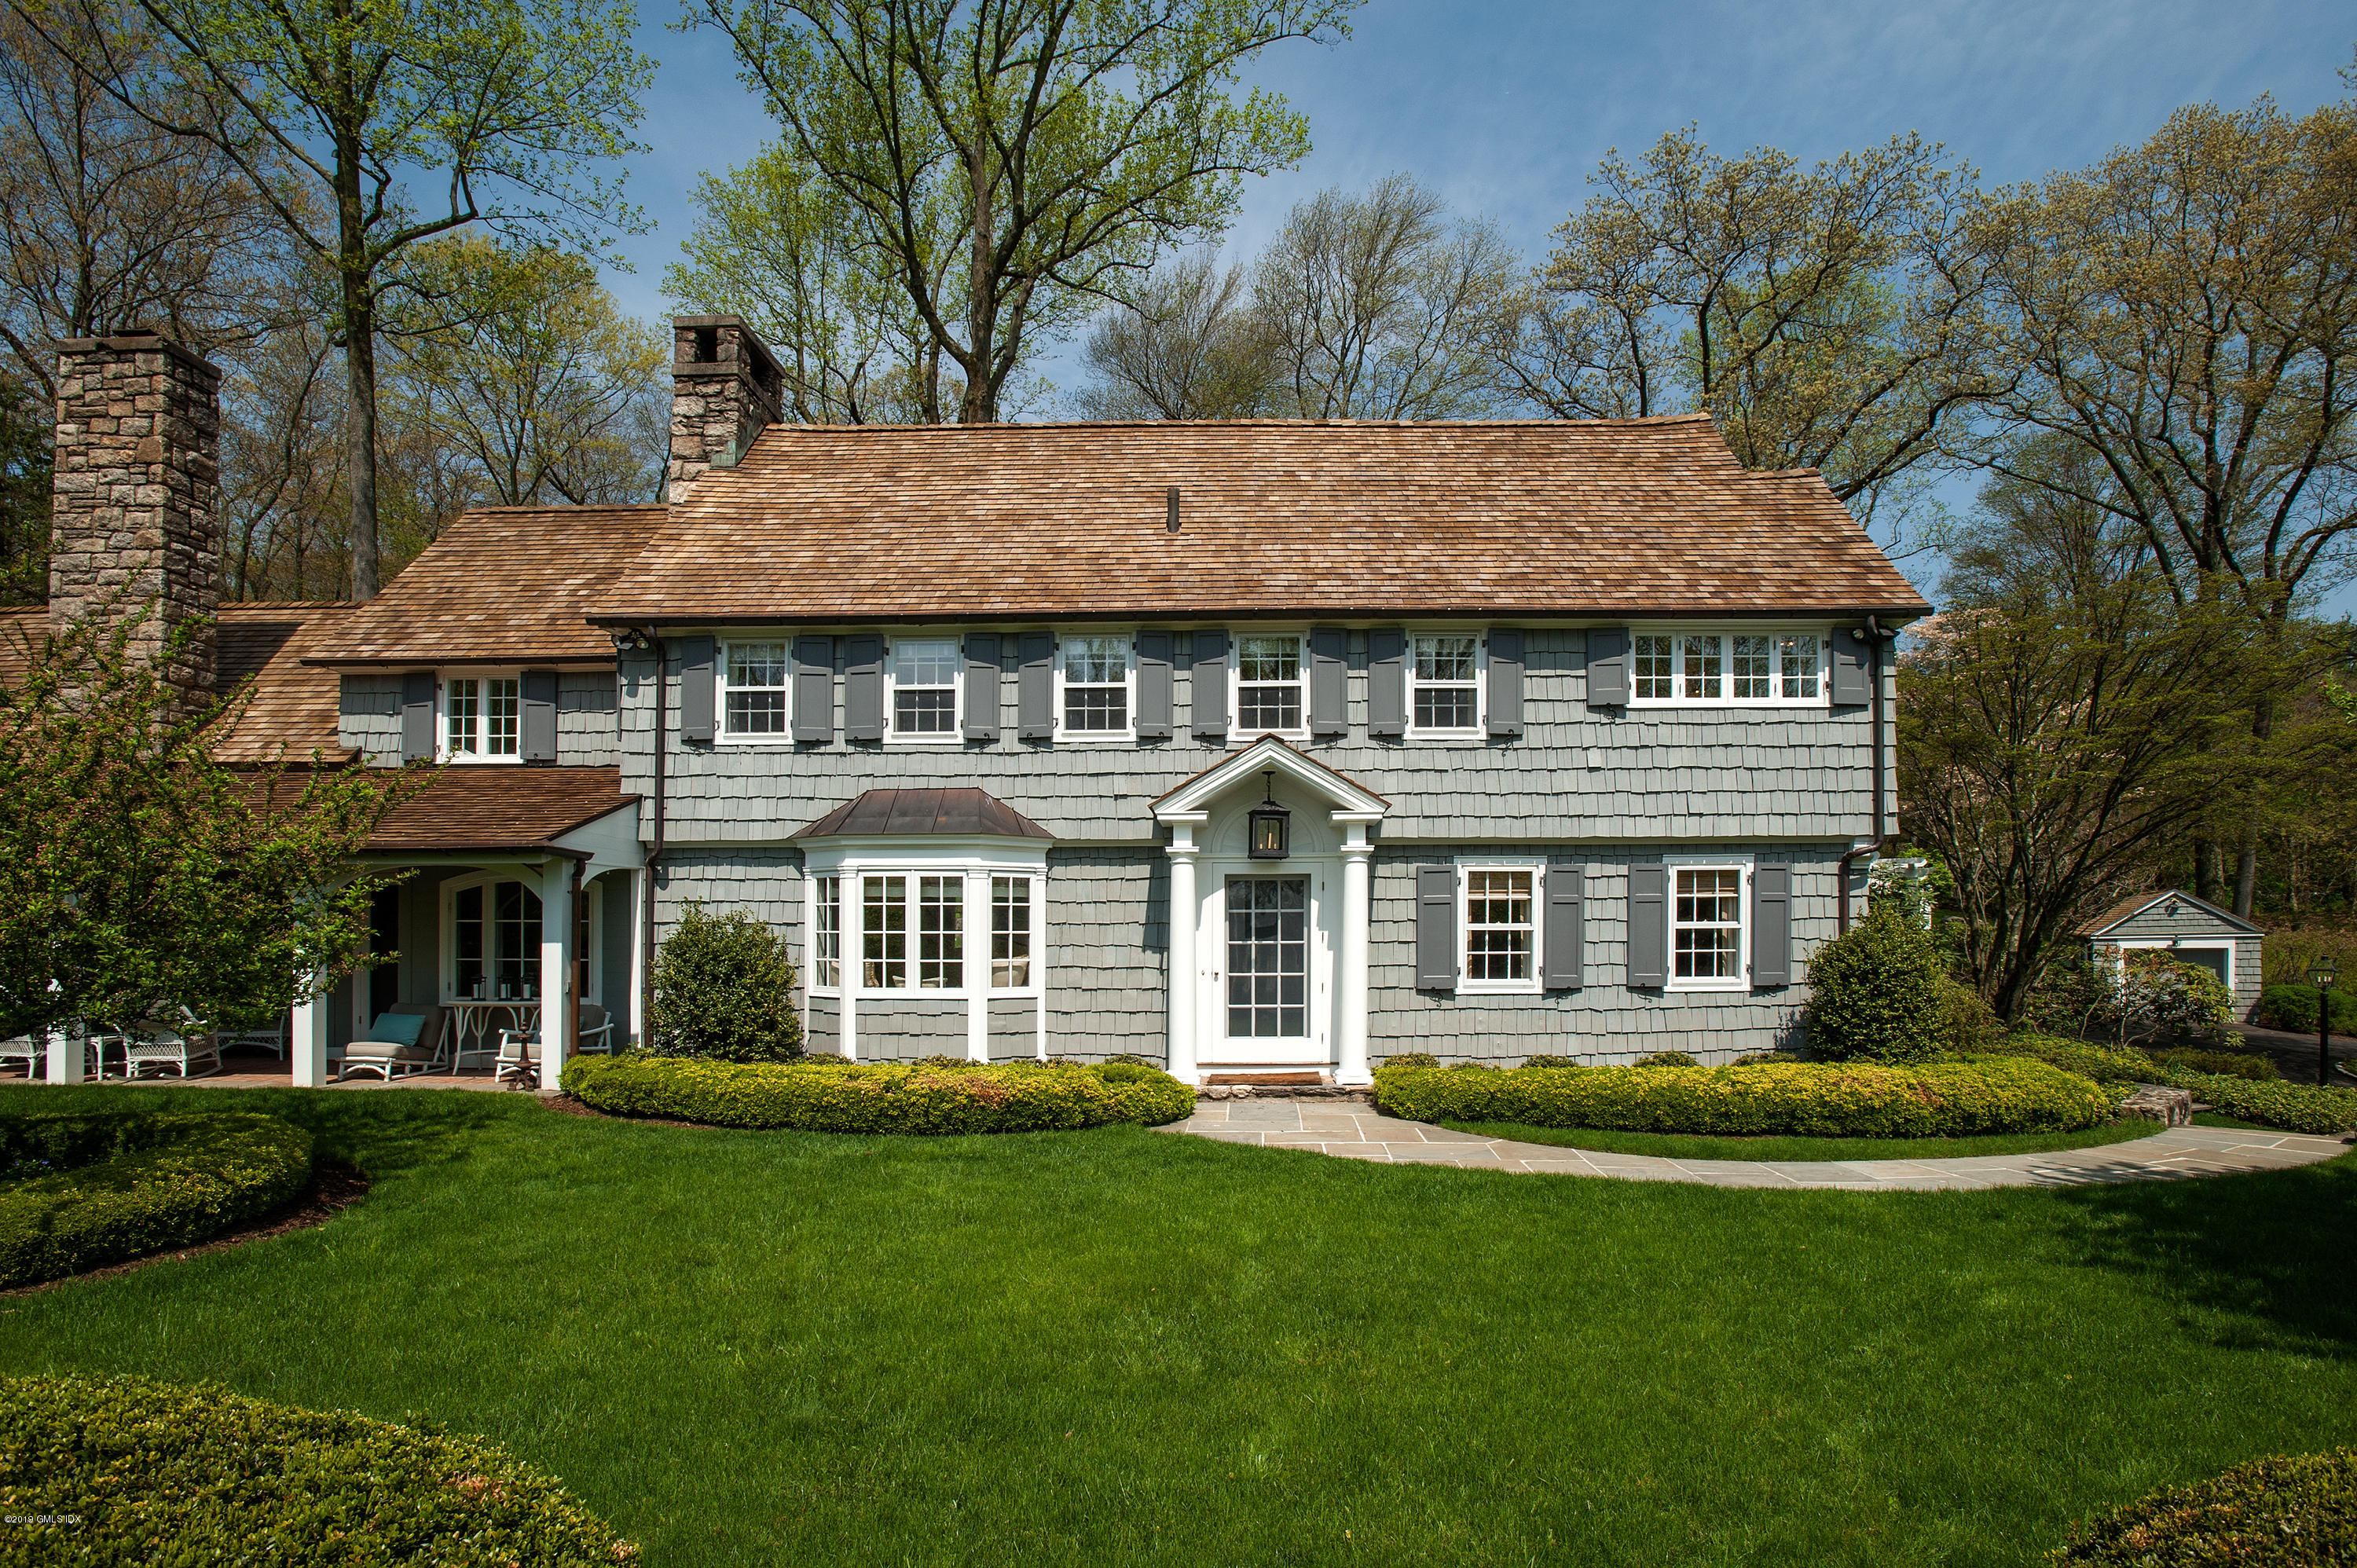 310 Round Hill Road,Greenwich,Connecticut 06831,5 Bedrooms Bedrooms,5 BathroomsBathrooms,Single family,Round Hill,106694